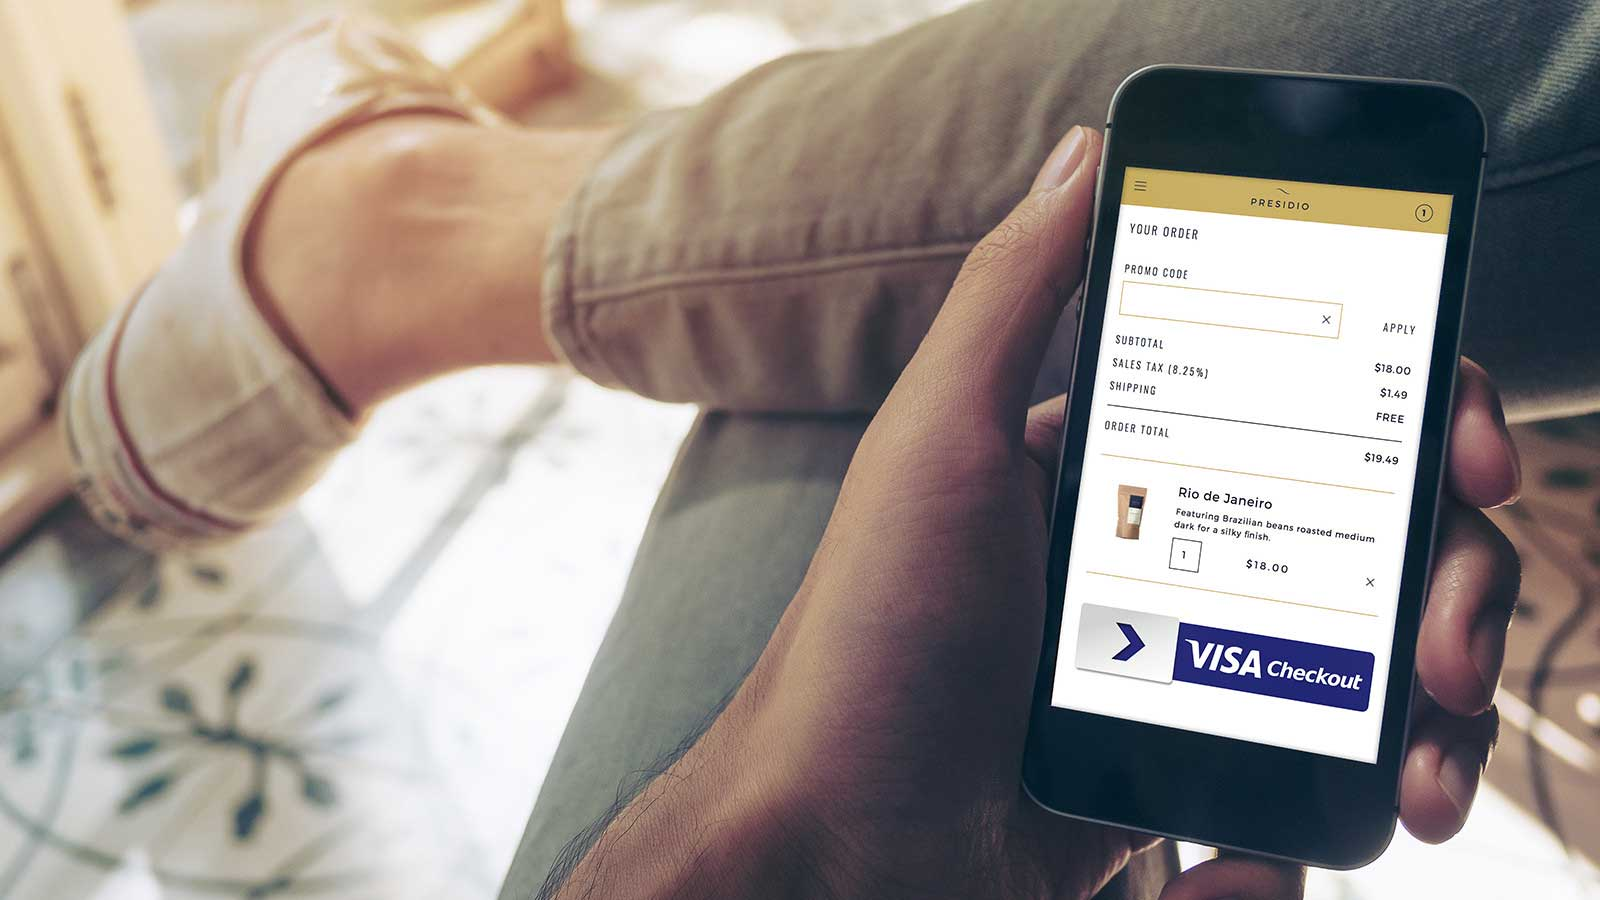 visa checkout through phone